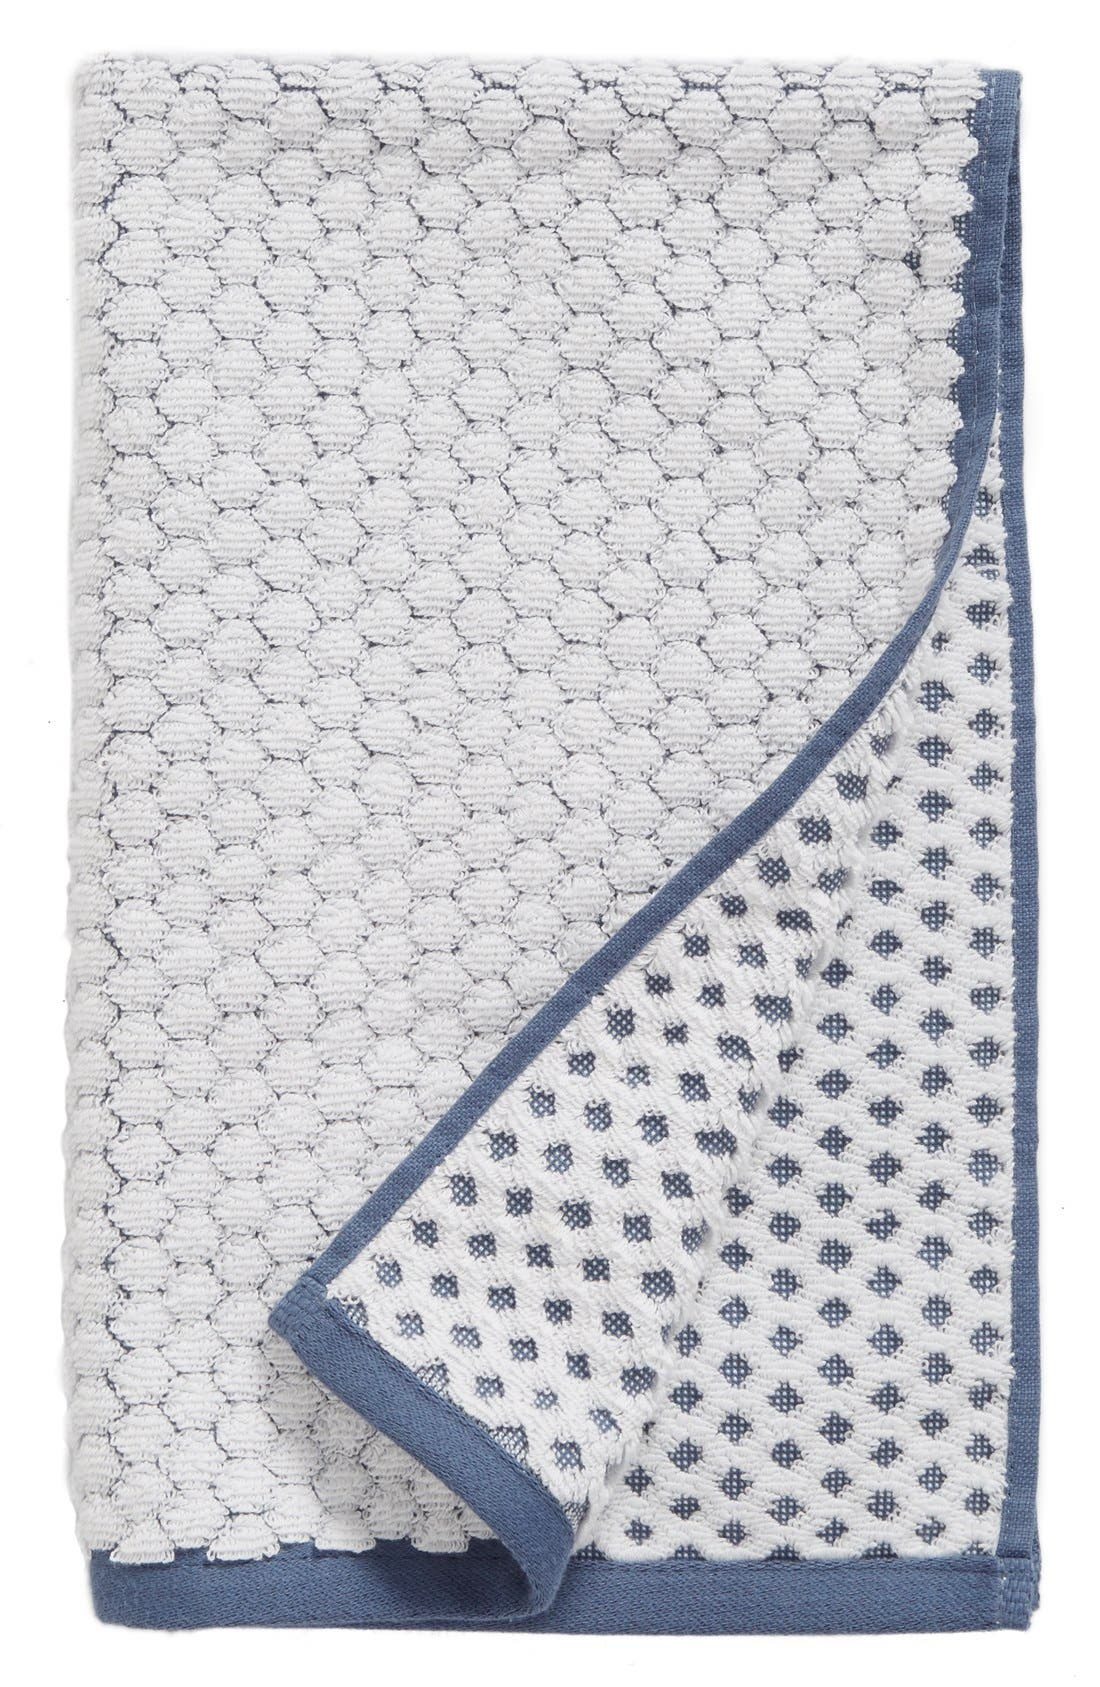 Alternate Image 1 Selected - Nordstrom at Home Cobble Hand Towel